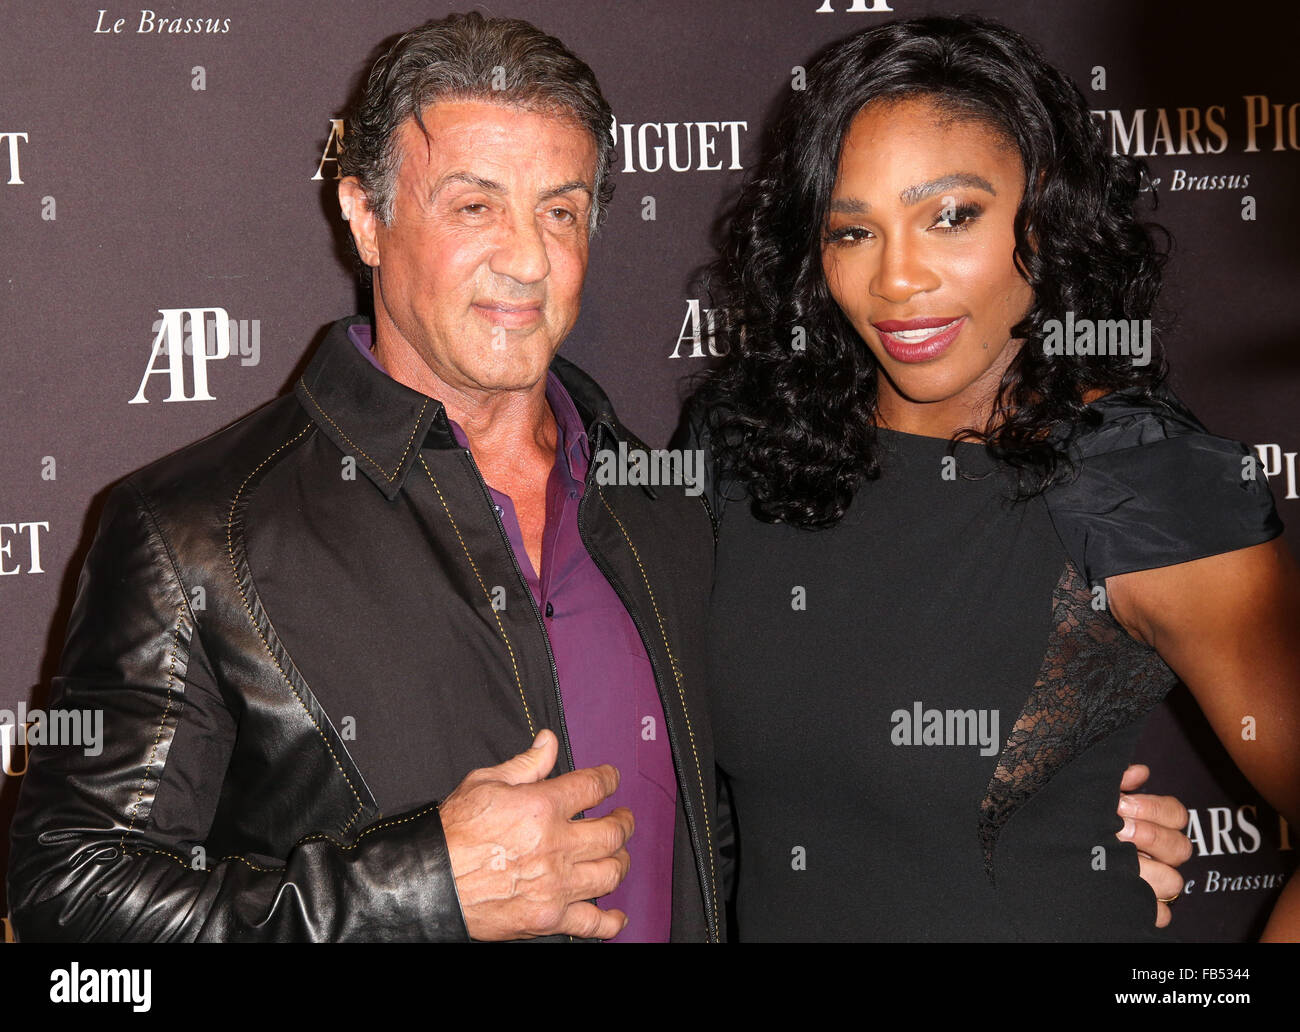 ¿Cuánto mide Sylvester Stallone? - Real height Opening-of-audemars-piguet-rodeo-drive-at-audemars-piguet-arrivals-FB5344